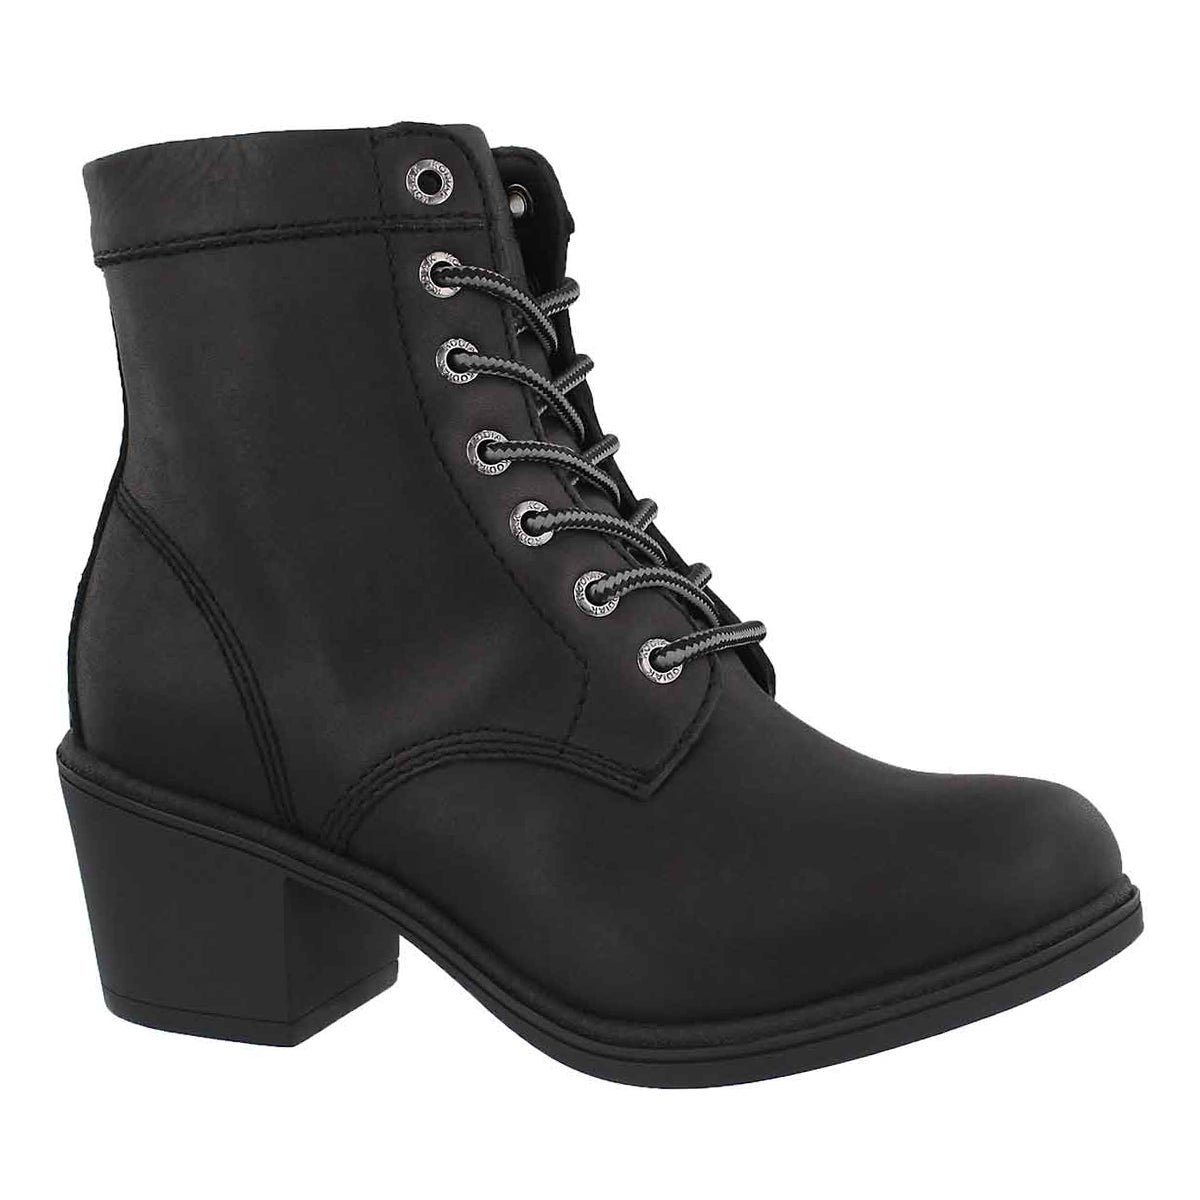 Women's CLAIRE black wtpf lace up ankle booties